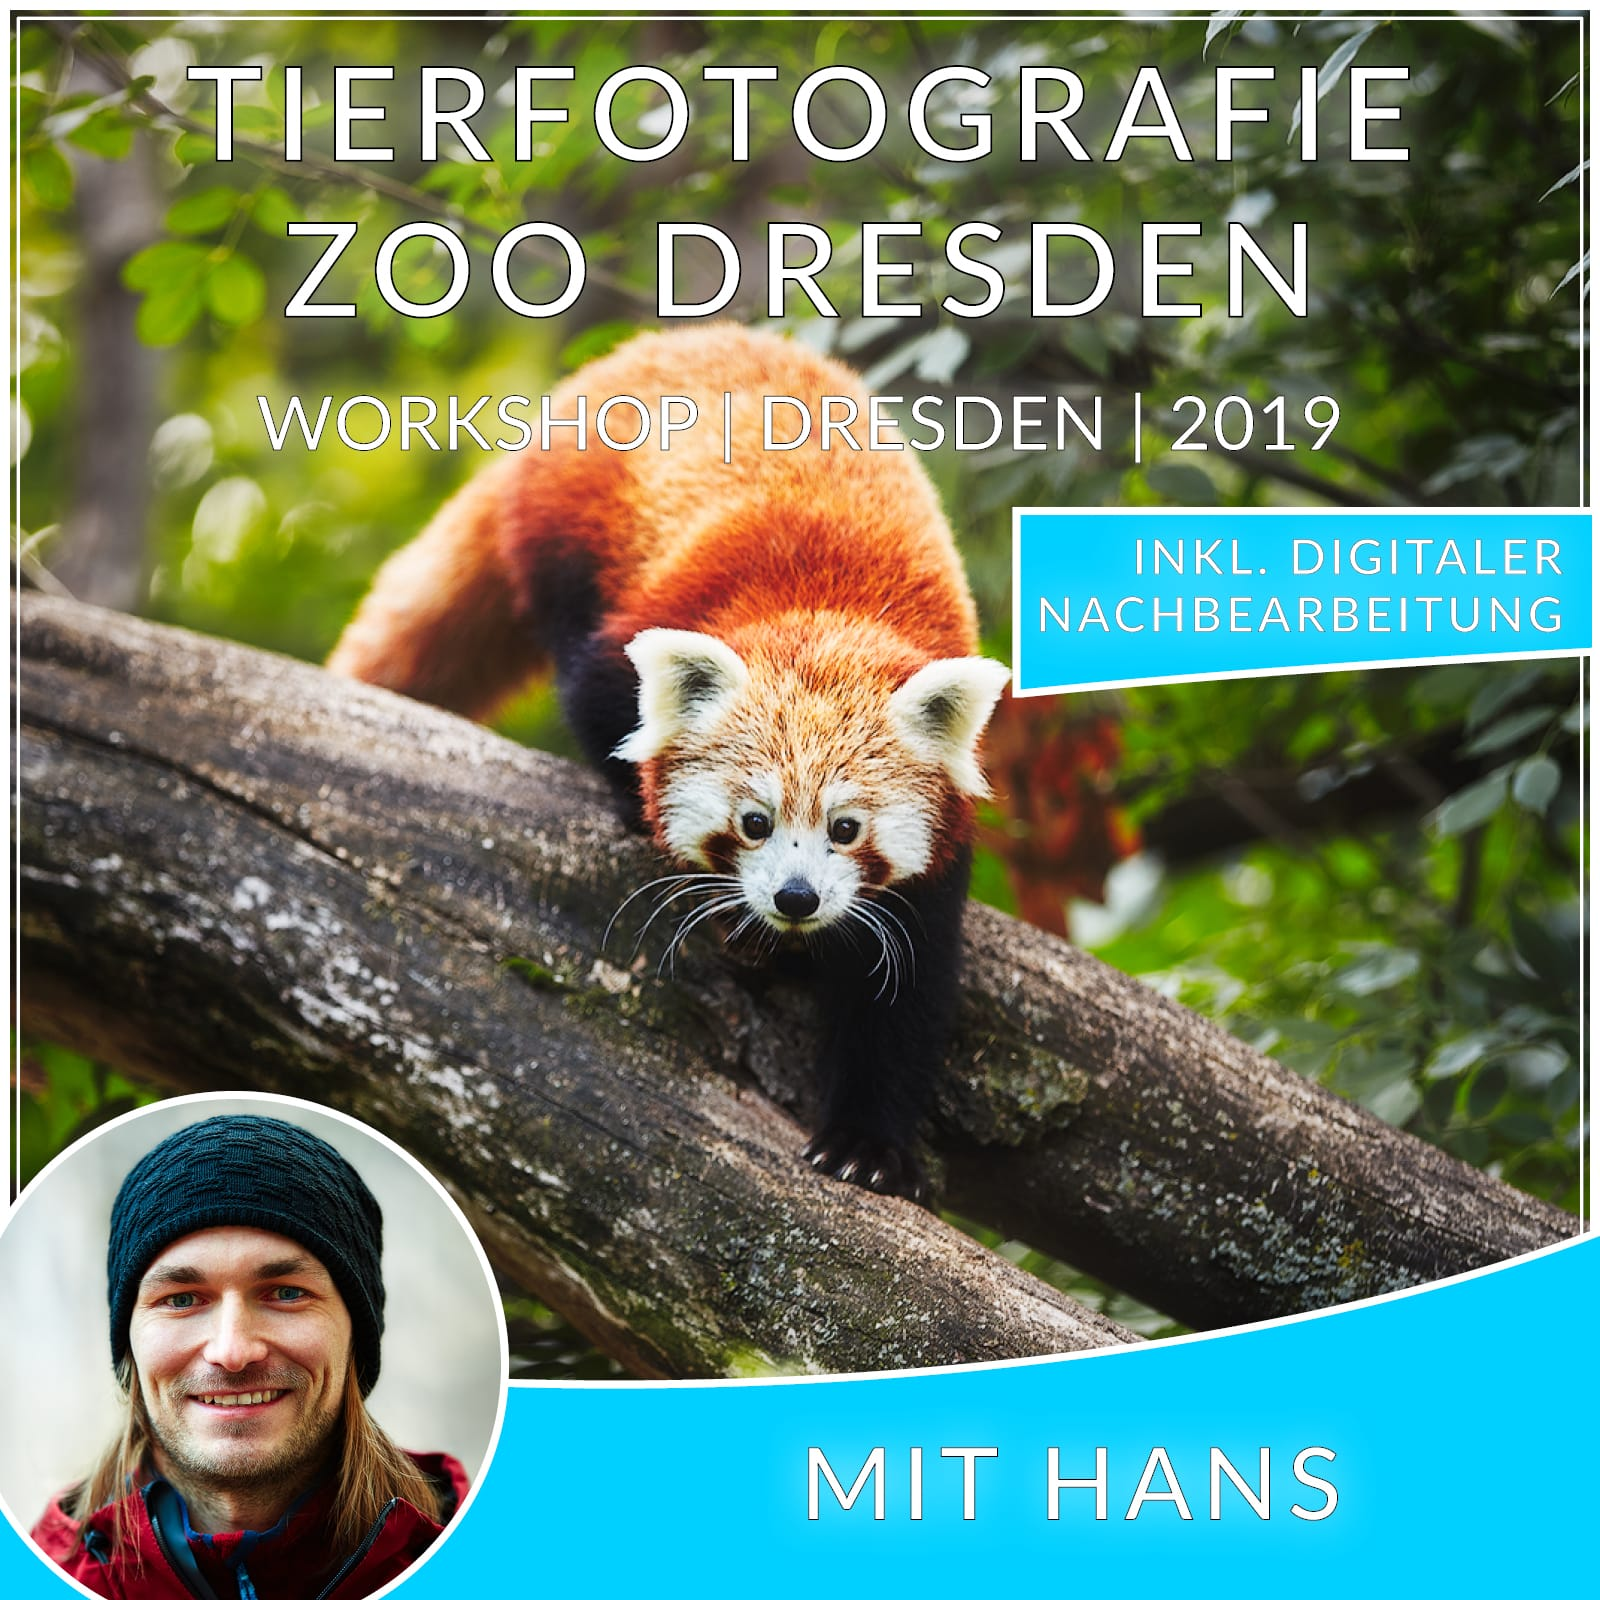 Workshop Tiefotografie im Zoo Dresden Hans Fineart